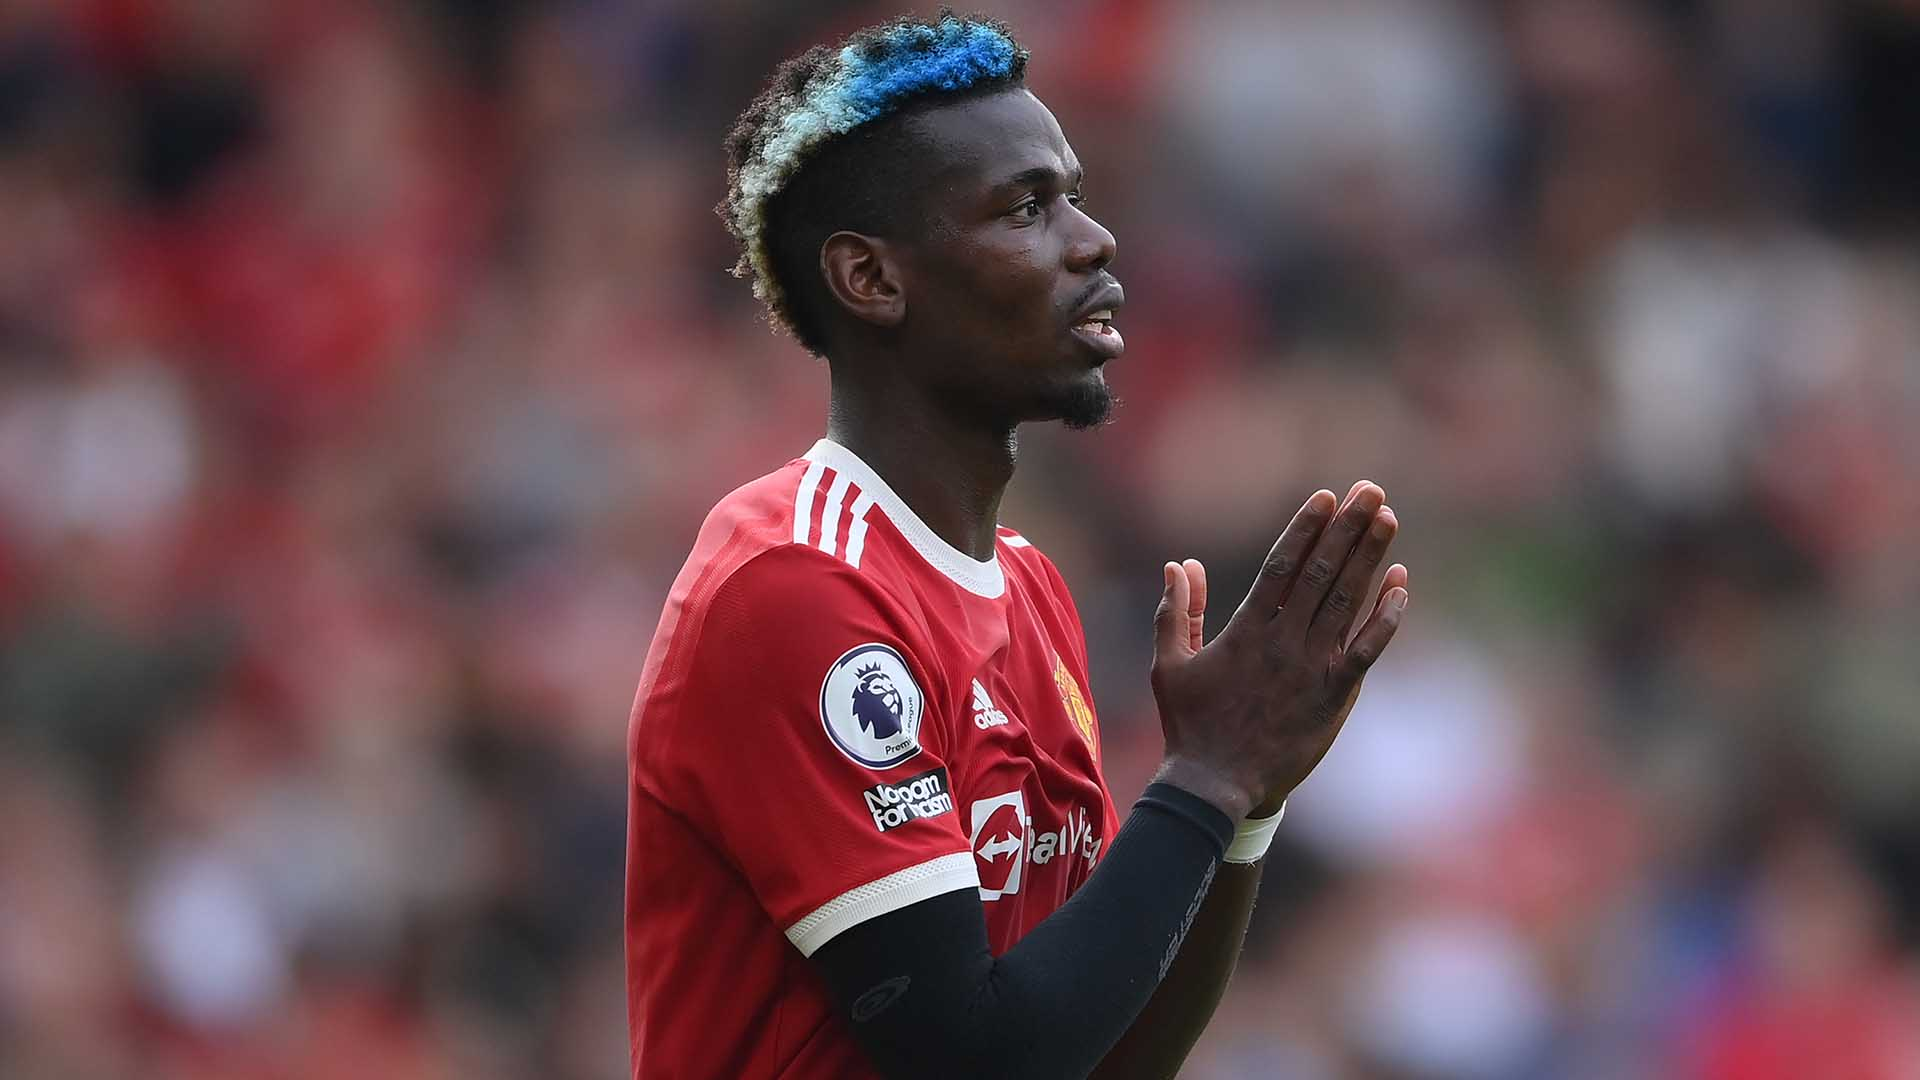 Pogba hints at Juventus return amid Manchester United contract uncertainty